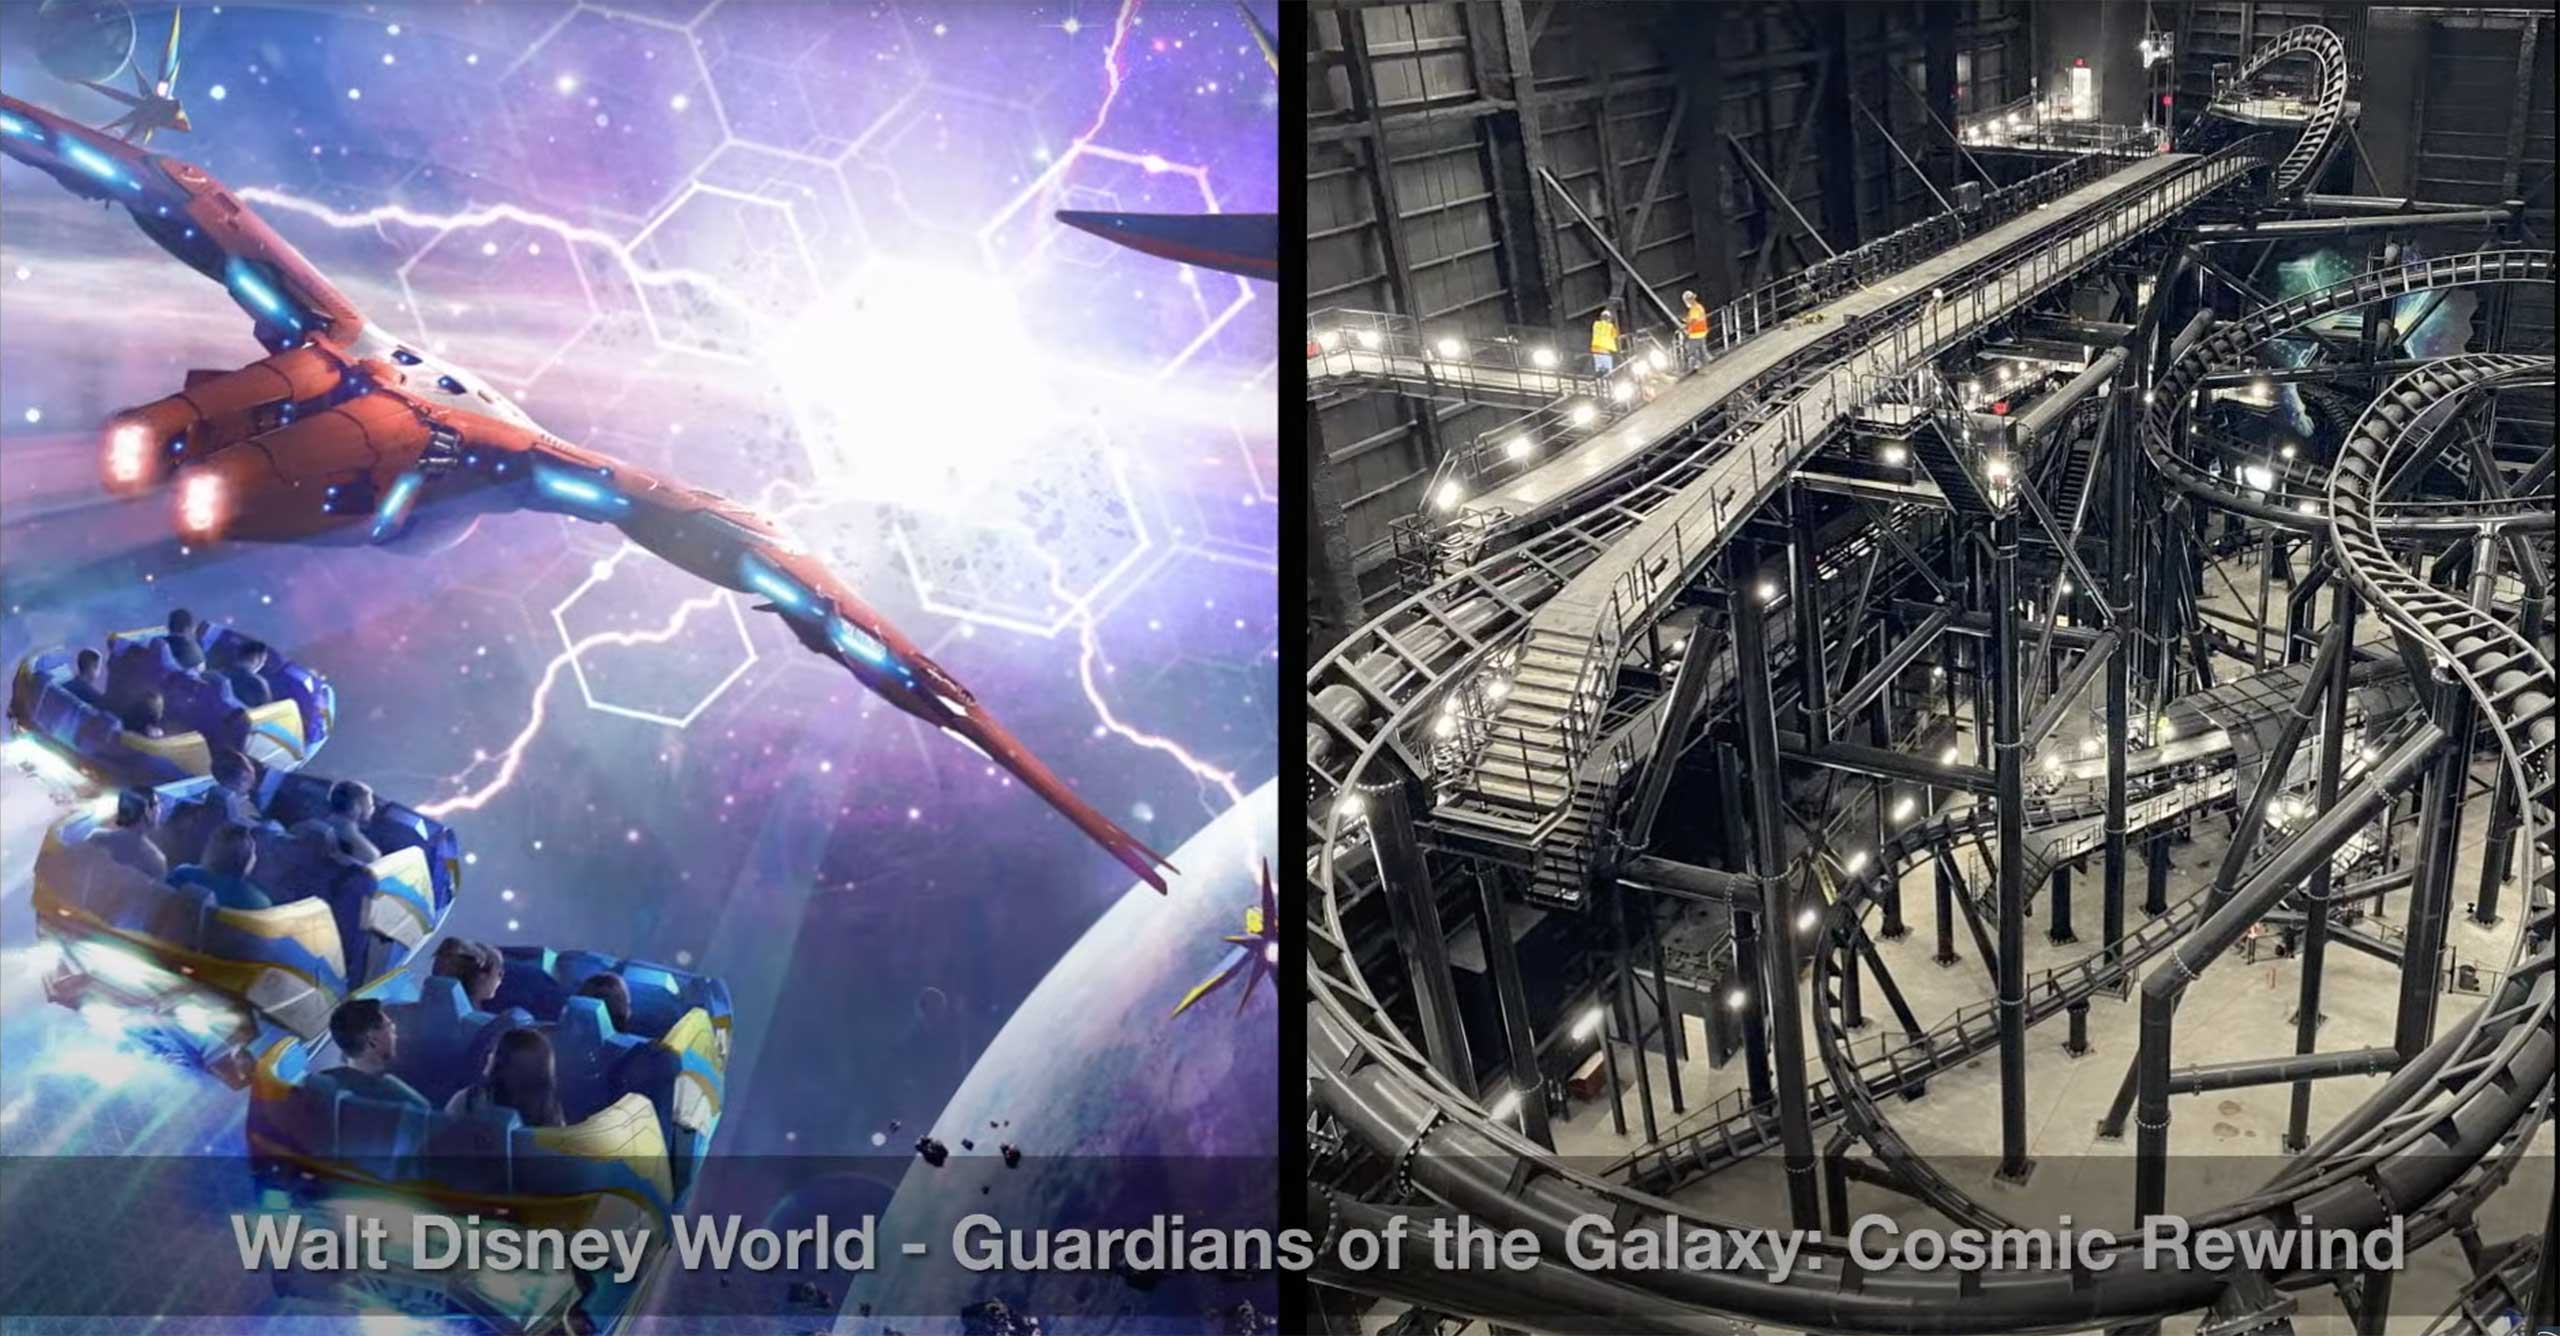 Inside Guardians of the Galaxy Cosmic Rewind show building